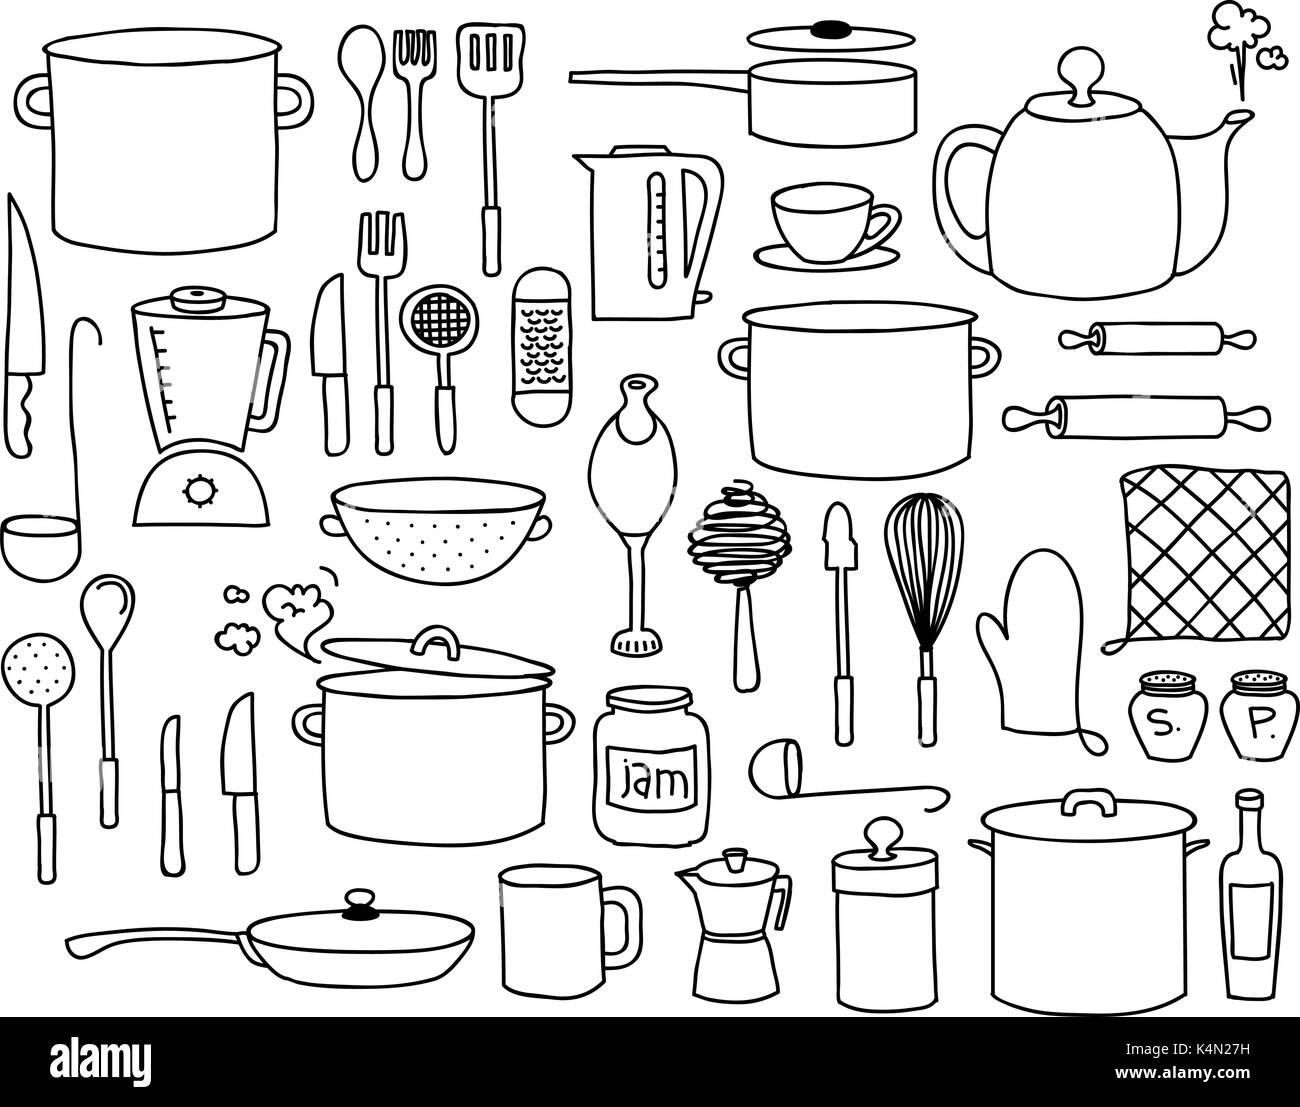 kitchen utensils pots and other kitchen elements doodle collection K4N27H